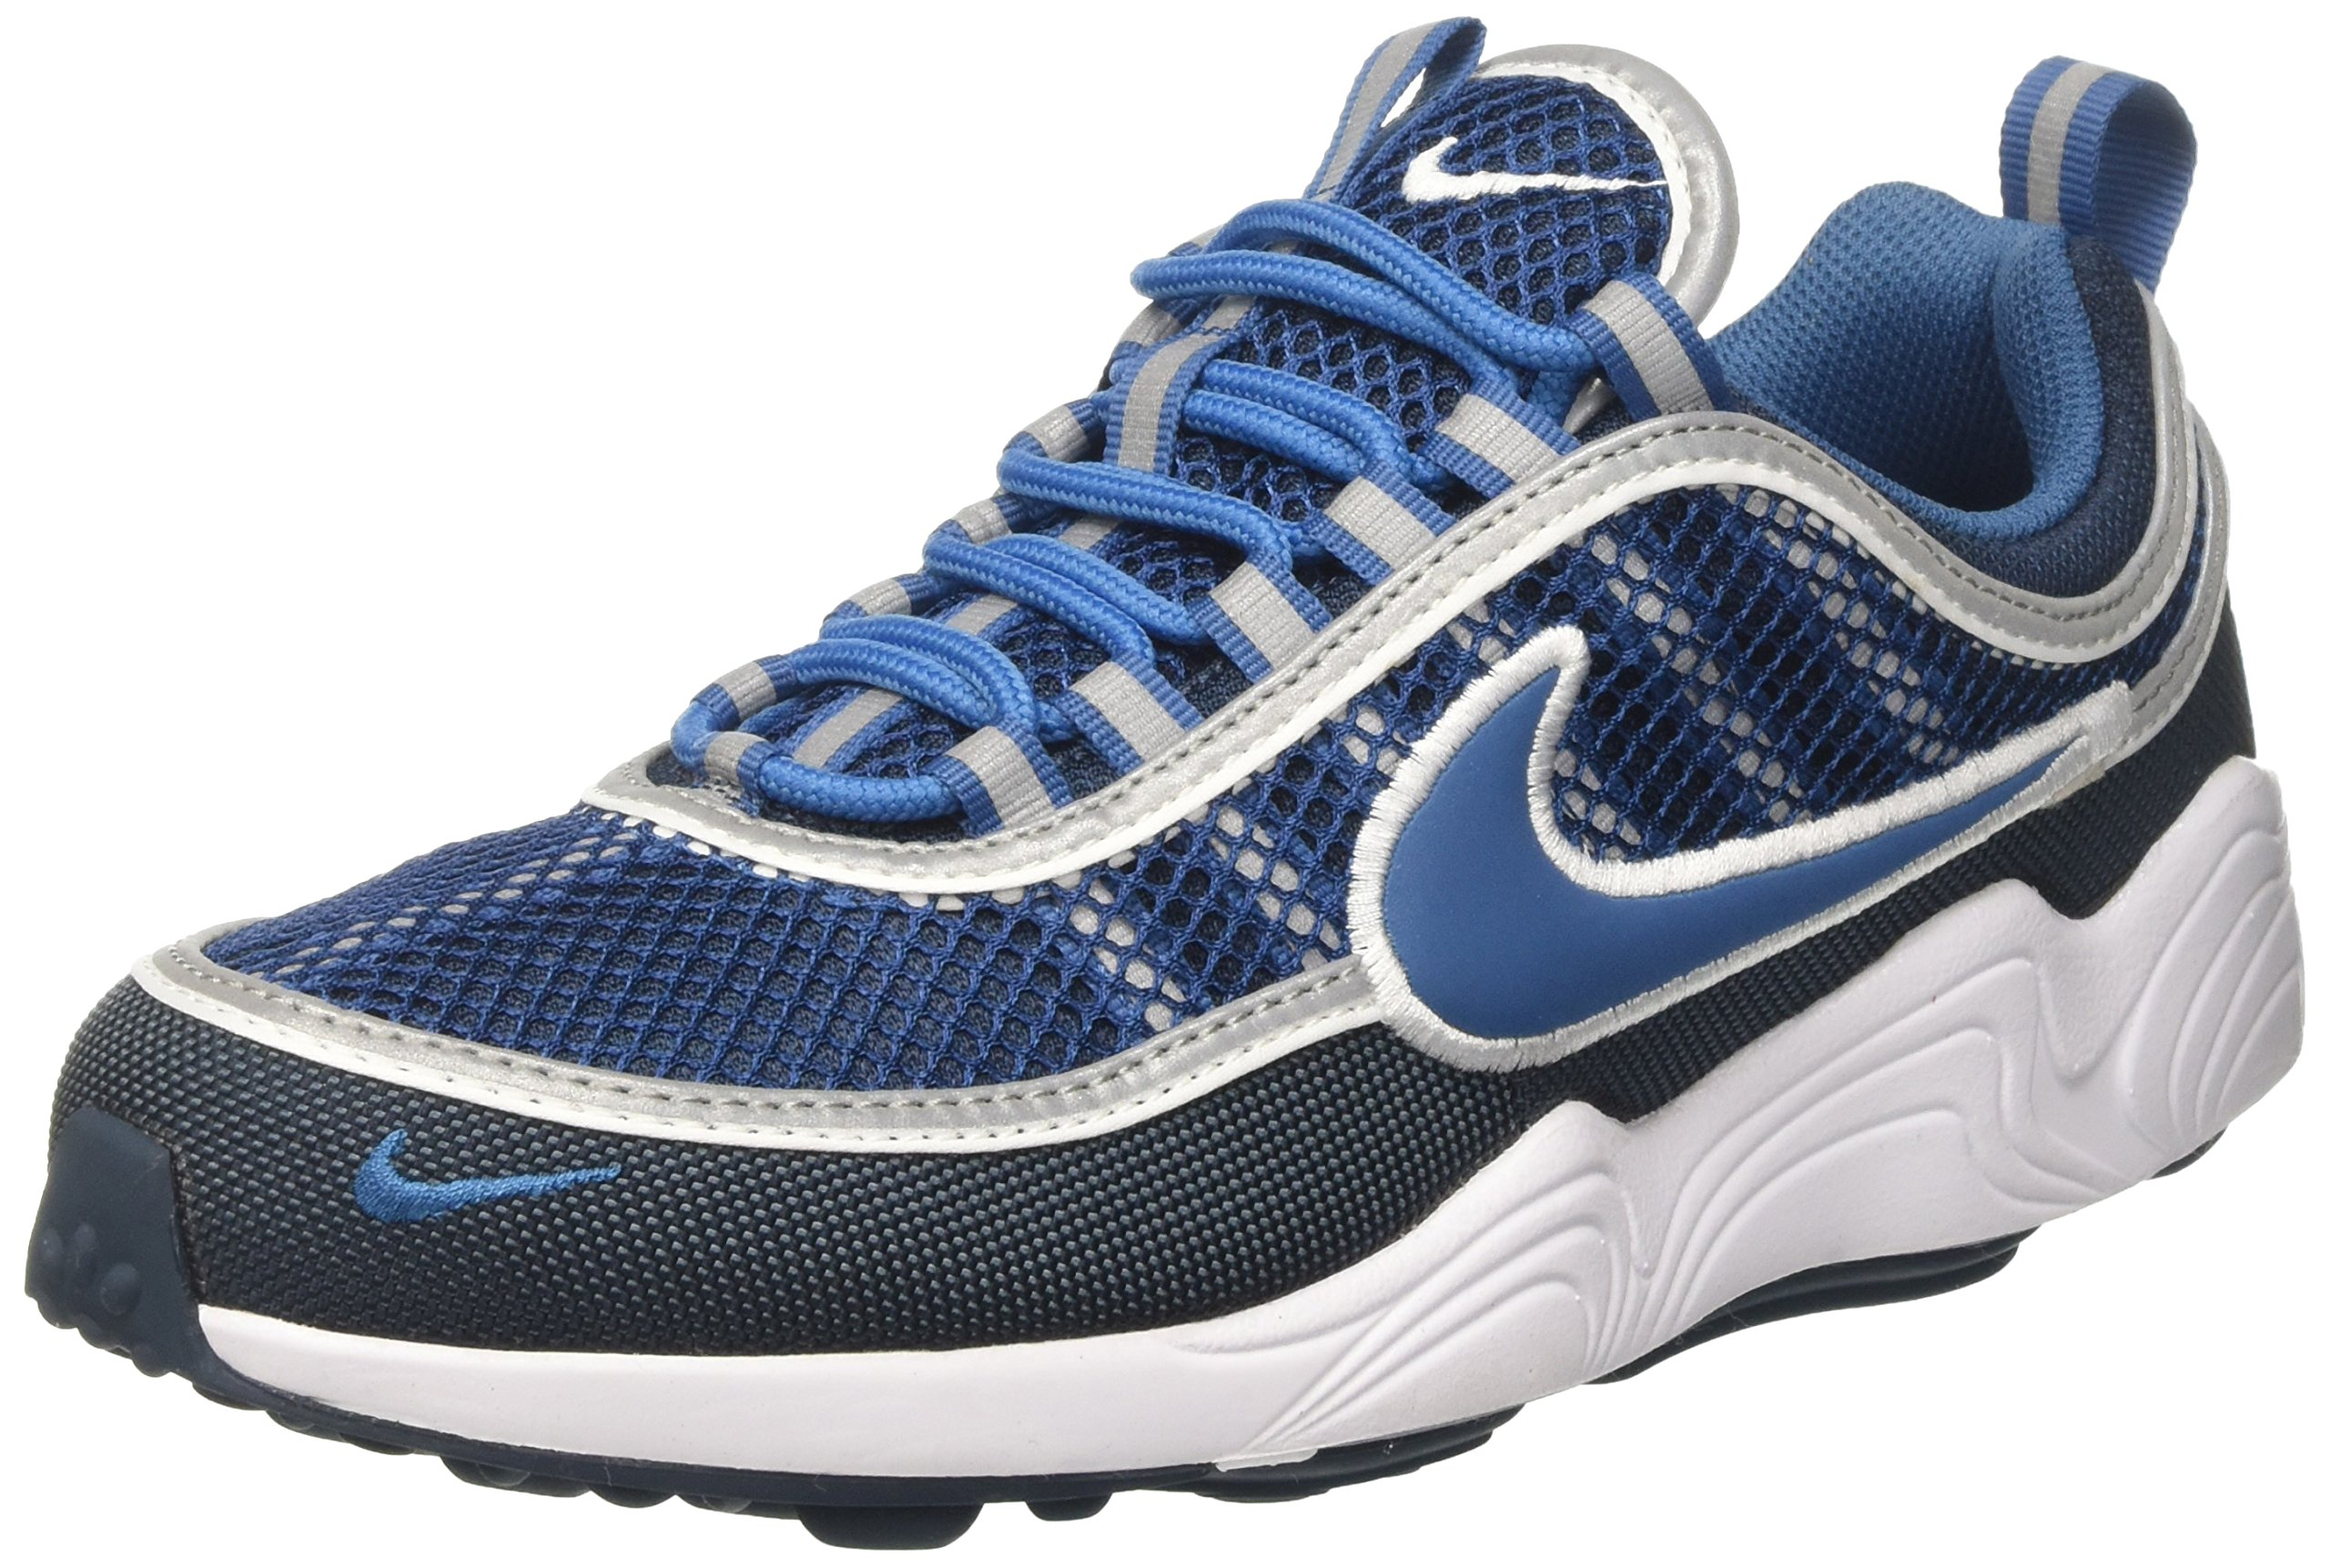 90f76b702dce8 Nike Air Zoom Spiridon Men's Shoes Armory Navy 926955-400 (12 D(M) US)